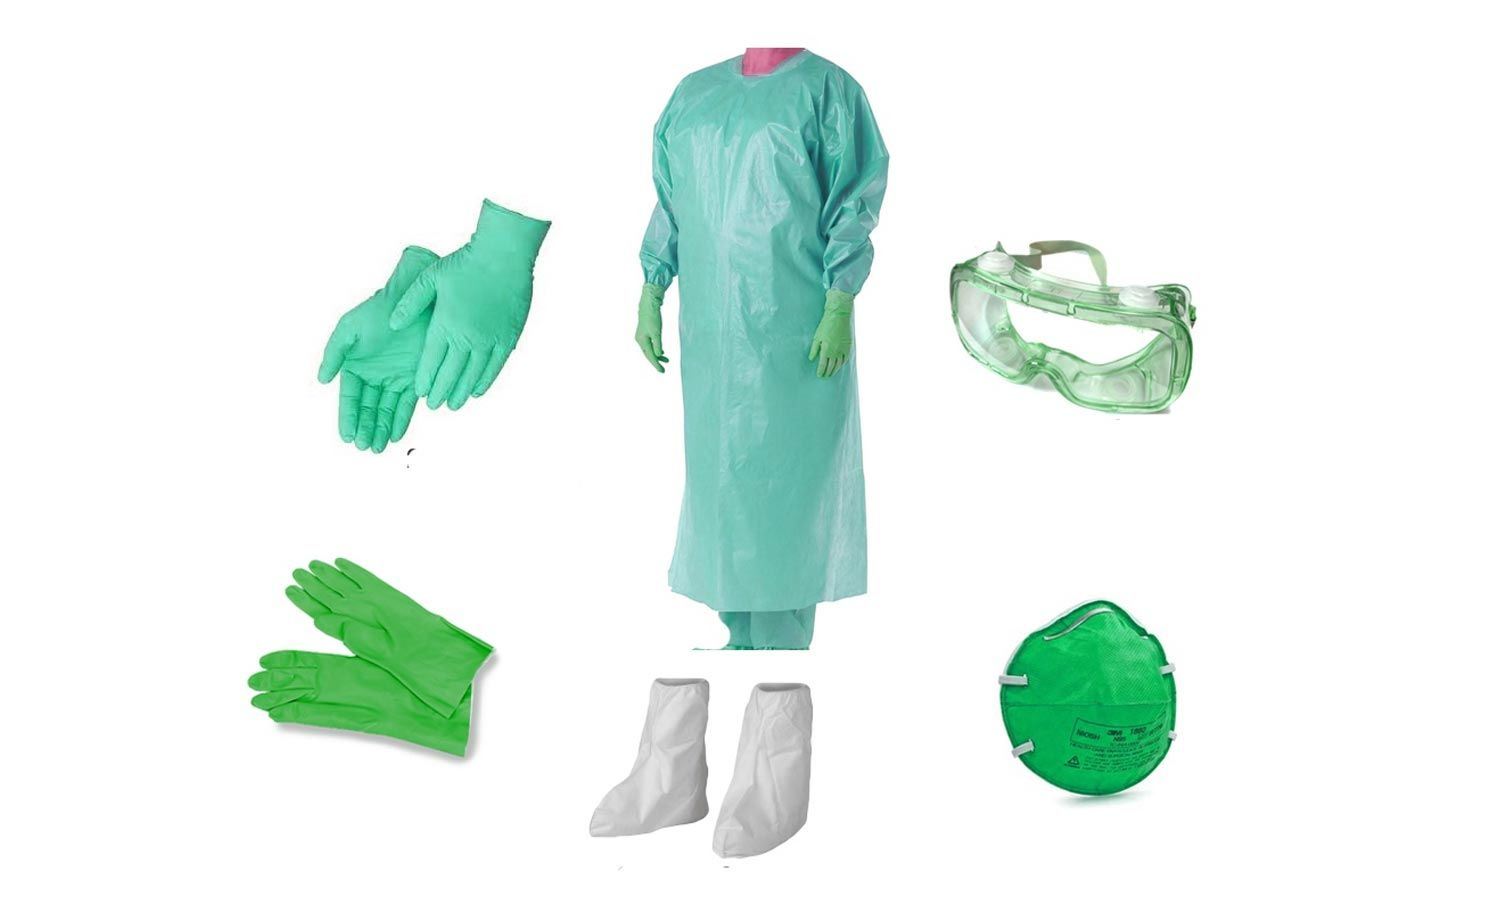 Govt allows export of COVID-19 PPE medical coveralls, fixes shipment quota